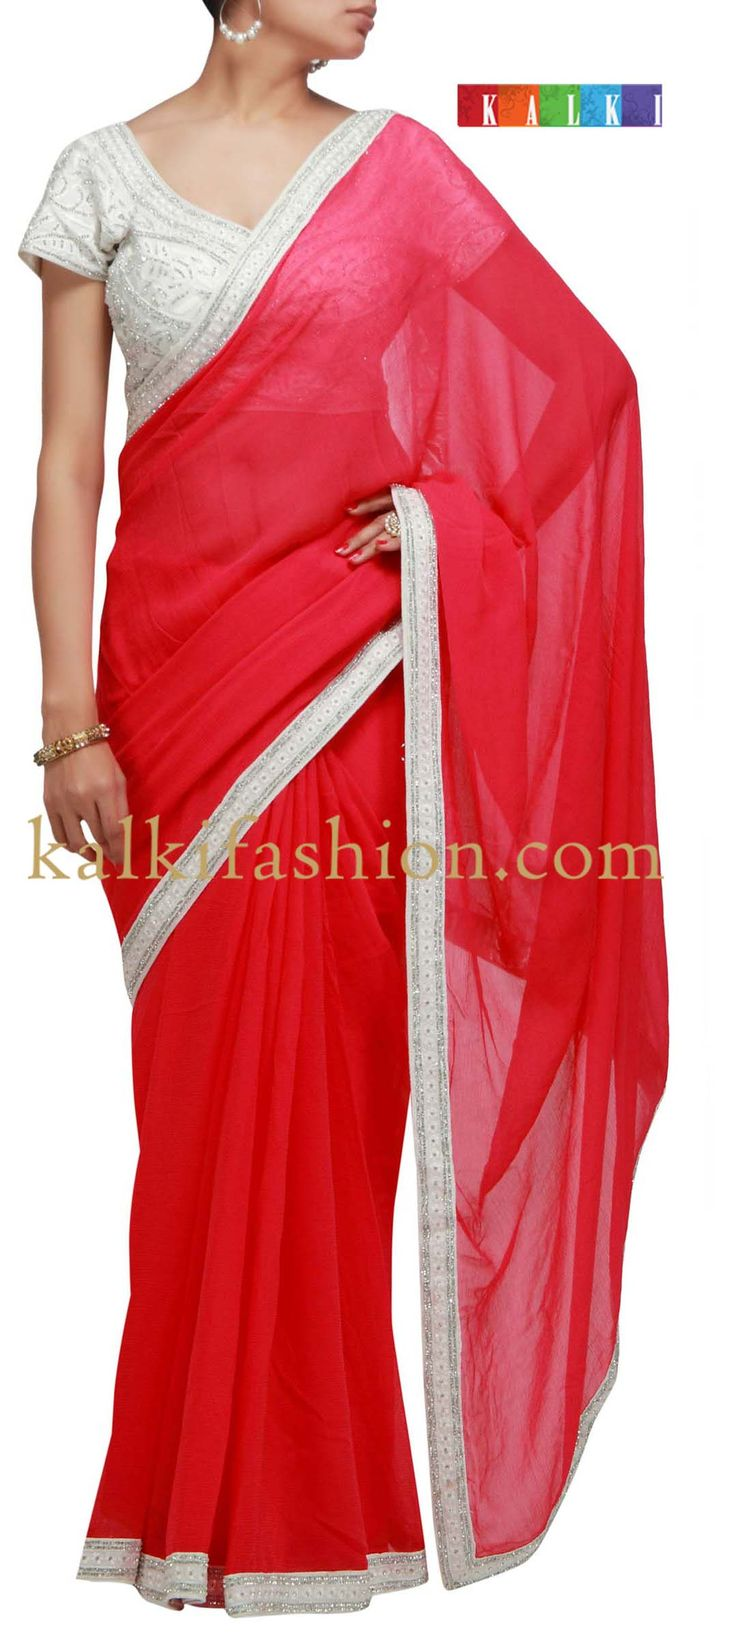 Buy it now  http://www.kalkifashion.com/peach-saree-with-embroidered-border.html  Peach saree with embroidered border